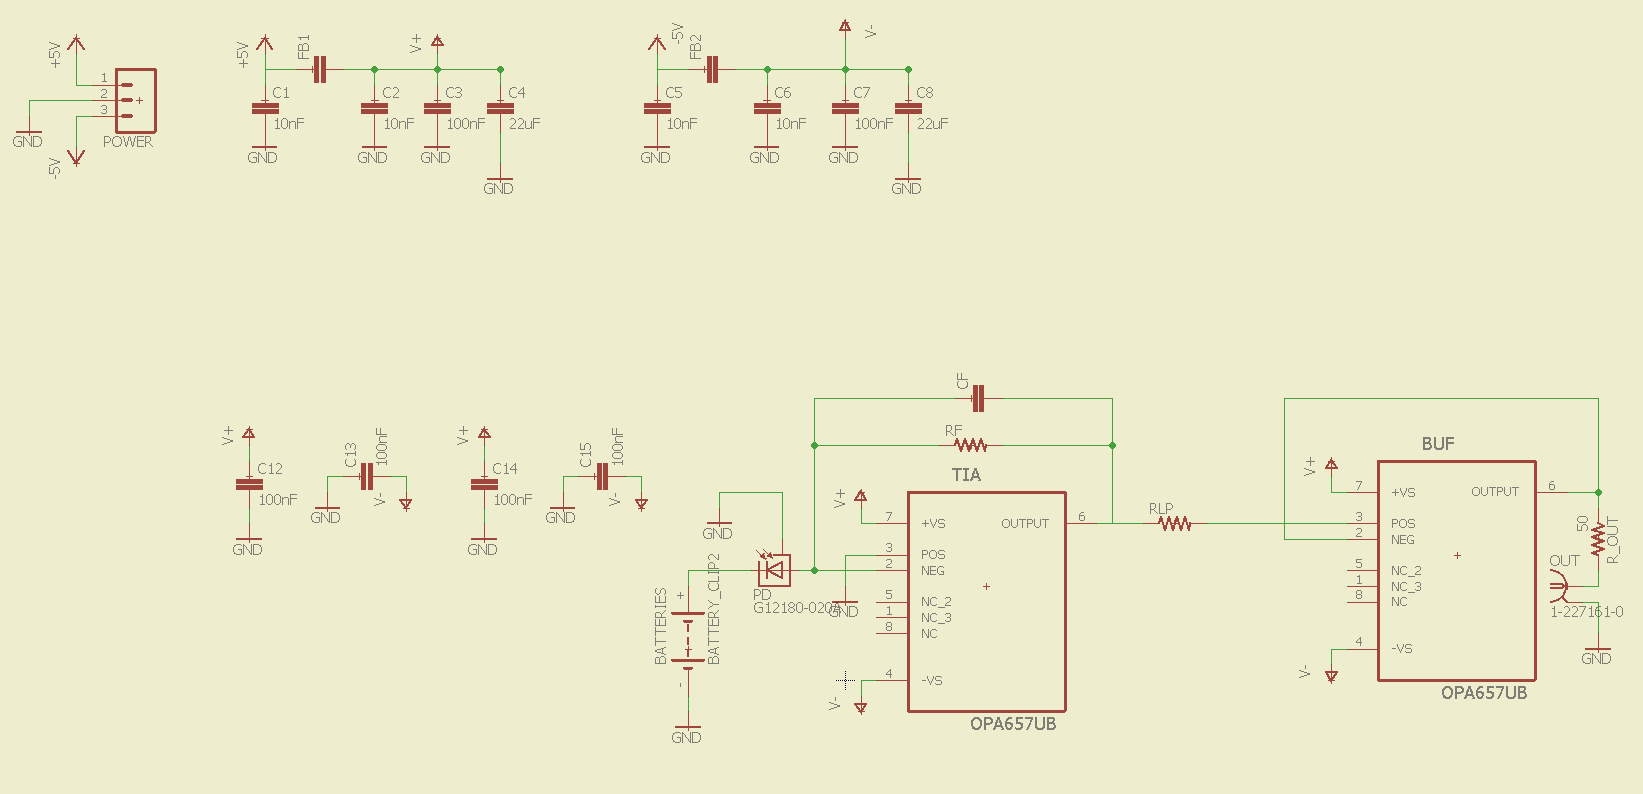 Opa847 Voltage Noise Peaking In Transimpedance Amplifier Tia Figure 2 Transfer Function For Reference Please Find Attached The Schematic And Board Layout Of This Circuit If You Have Any Questions About My Design Choices I Would Be Happy To